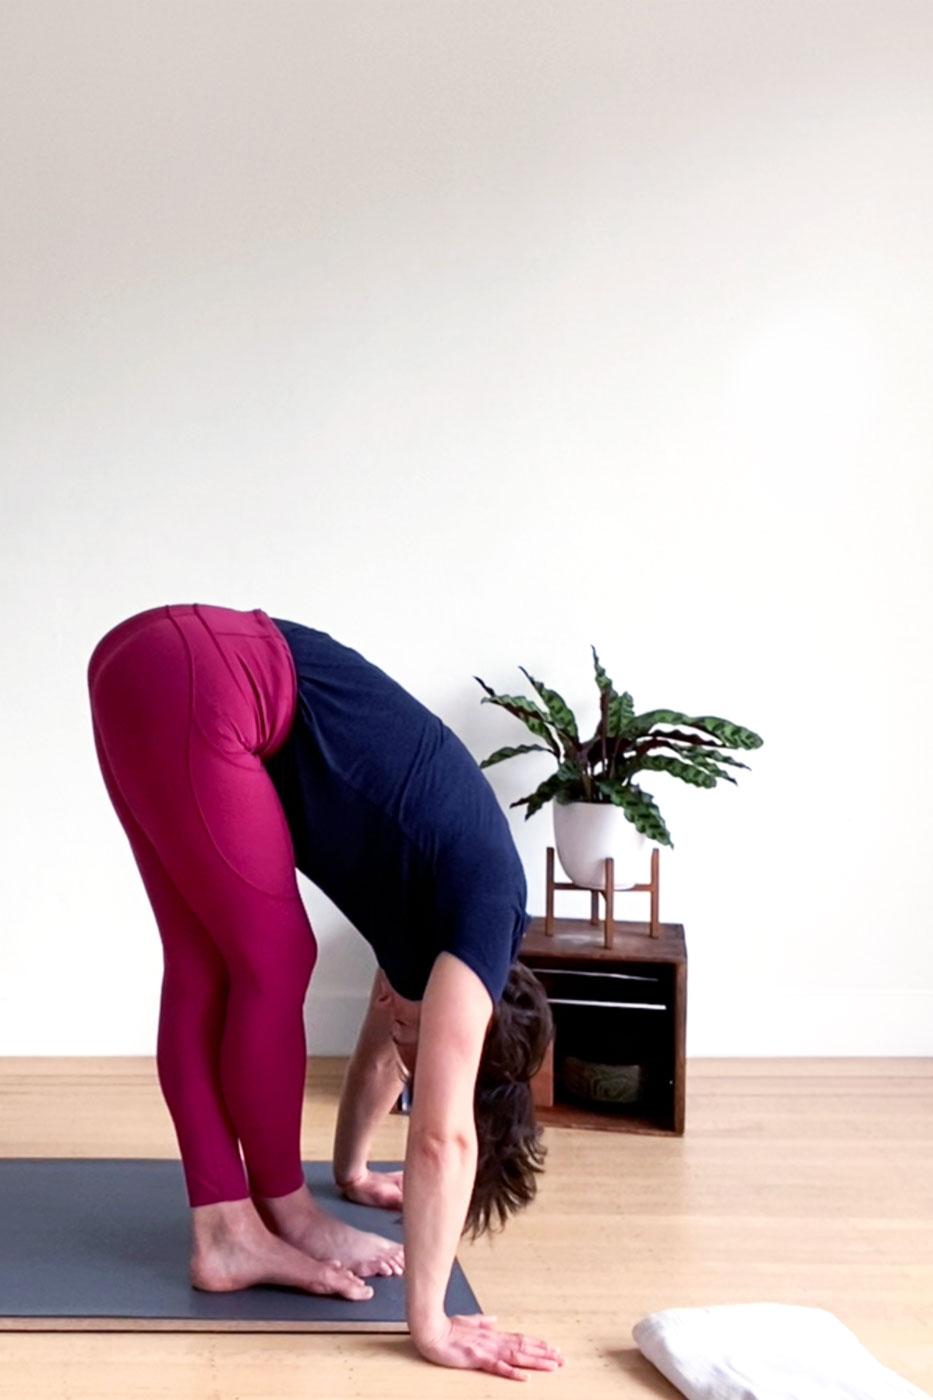 Moving Meditation Yoga Practice by active vegetarian